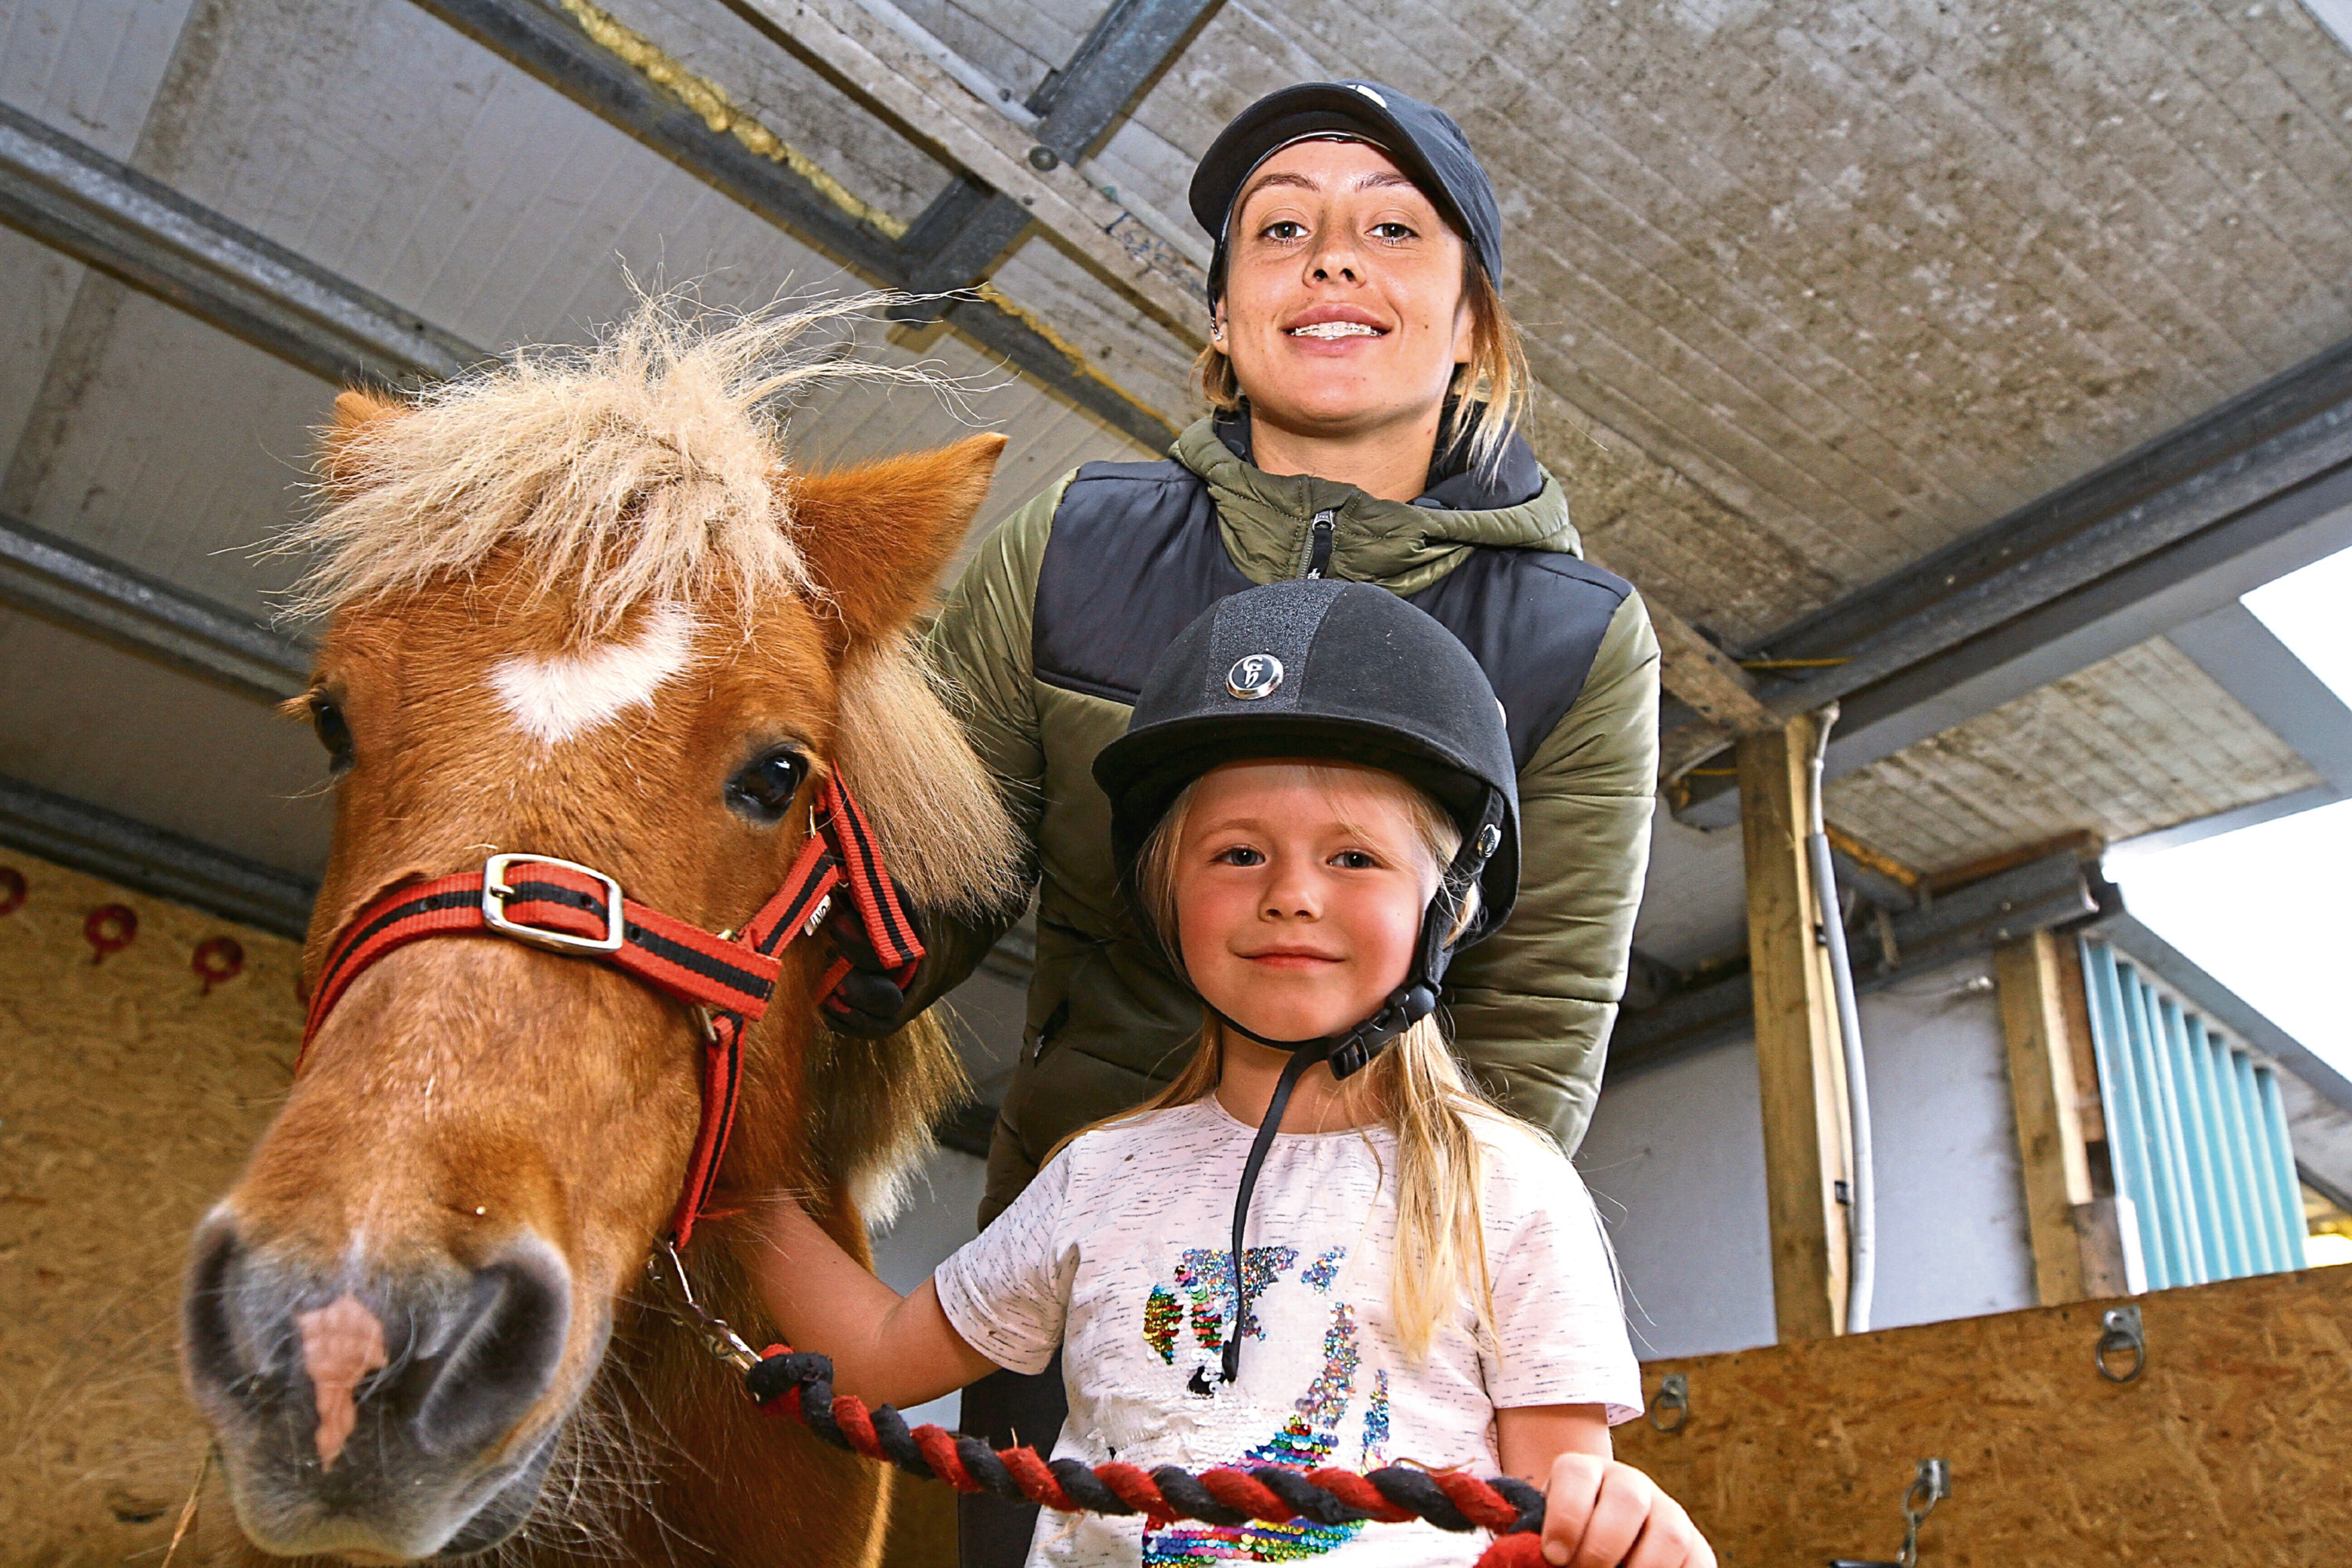 Daisy is pictured at Claverhouse Equestrian Centre with Reilly the Shetland pony and instructor Rachel Rosscraig